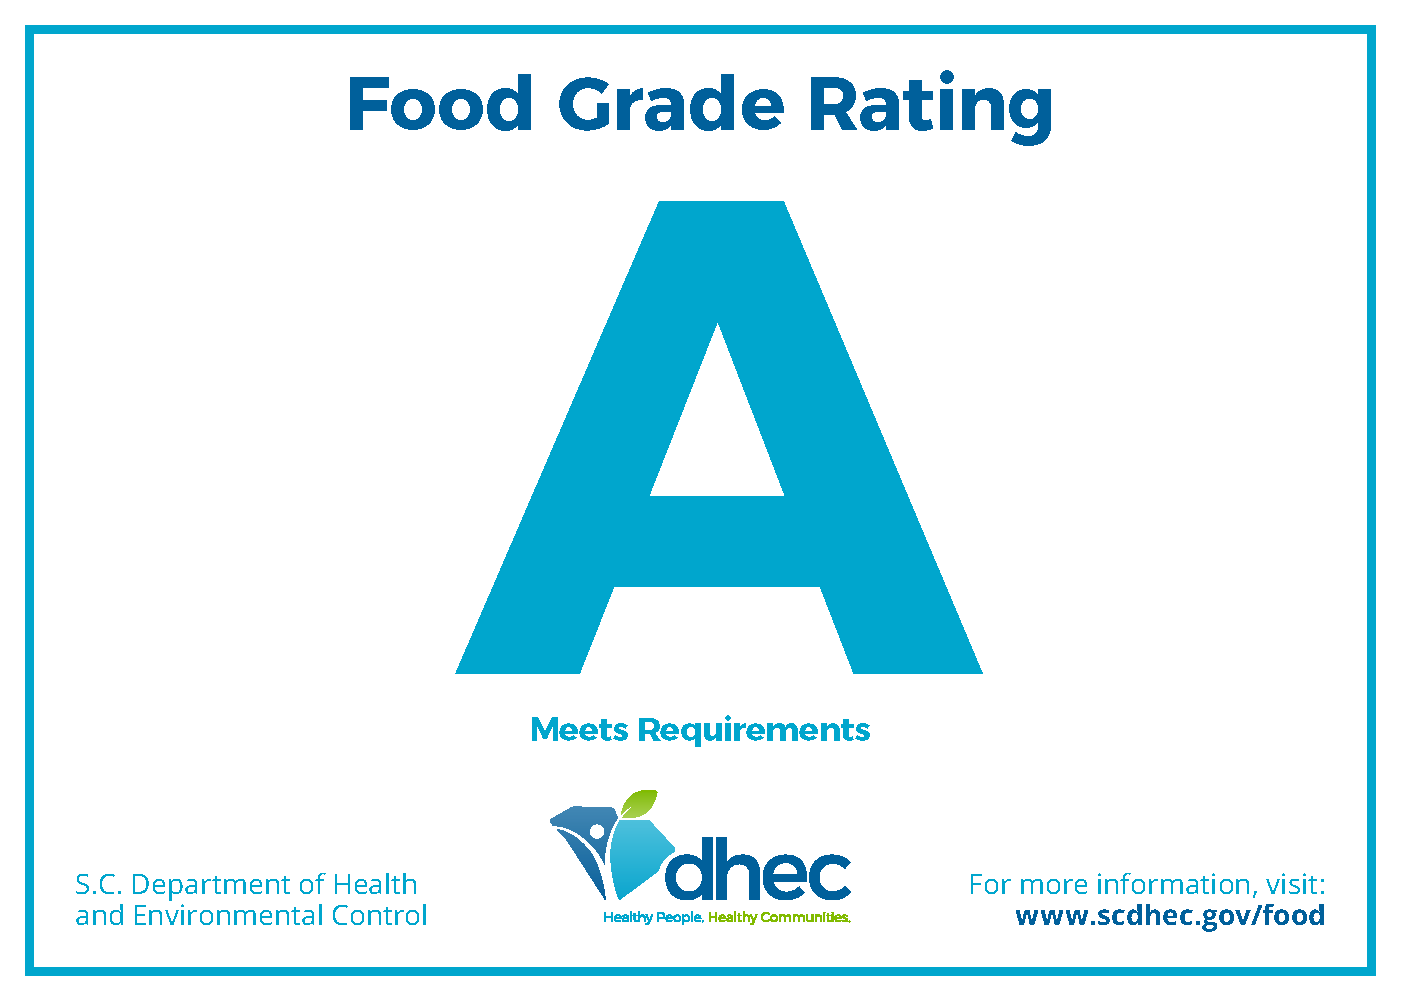 image of Grade A rating